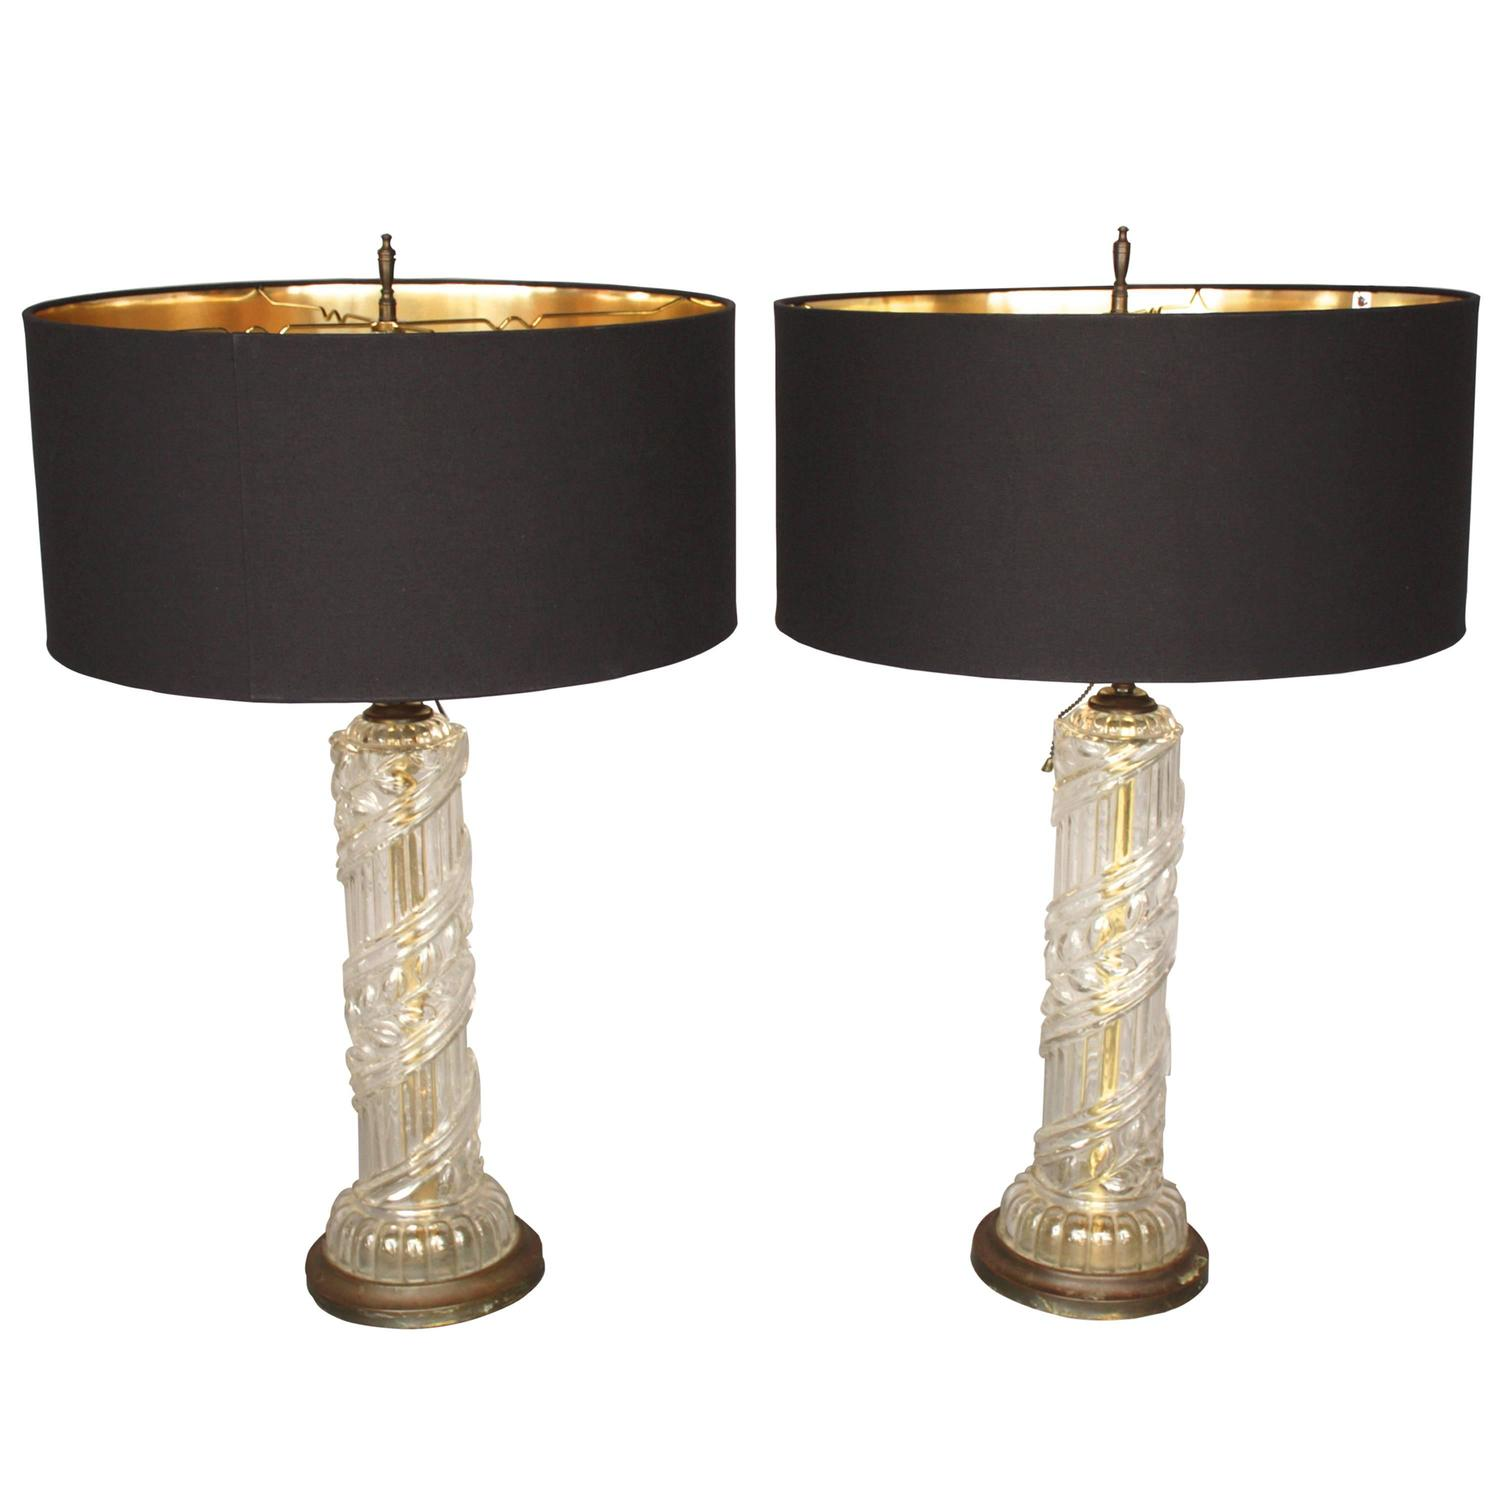 elegant pair of tall modernist table lamps at 1stdibs